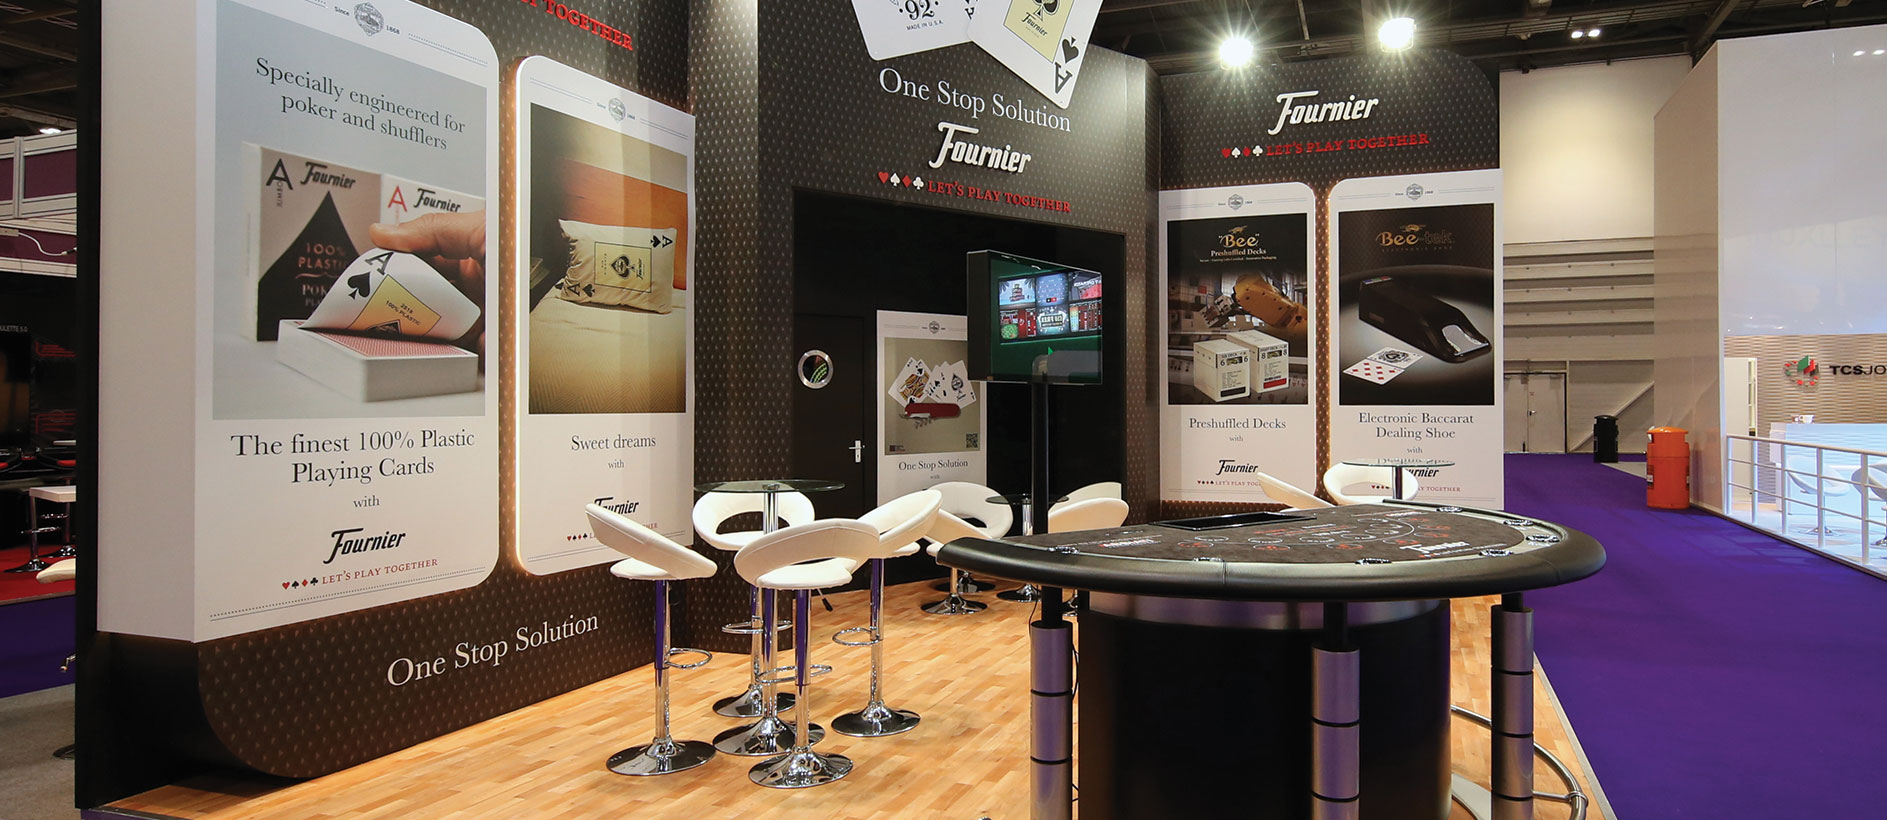 Bespoke stand by Exhibit 3Sixty with logos, furniture and graphics